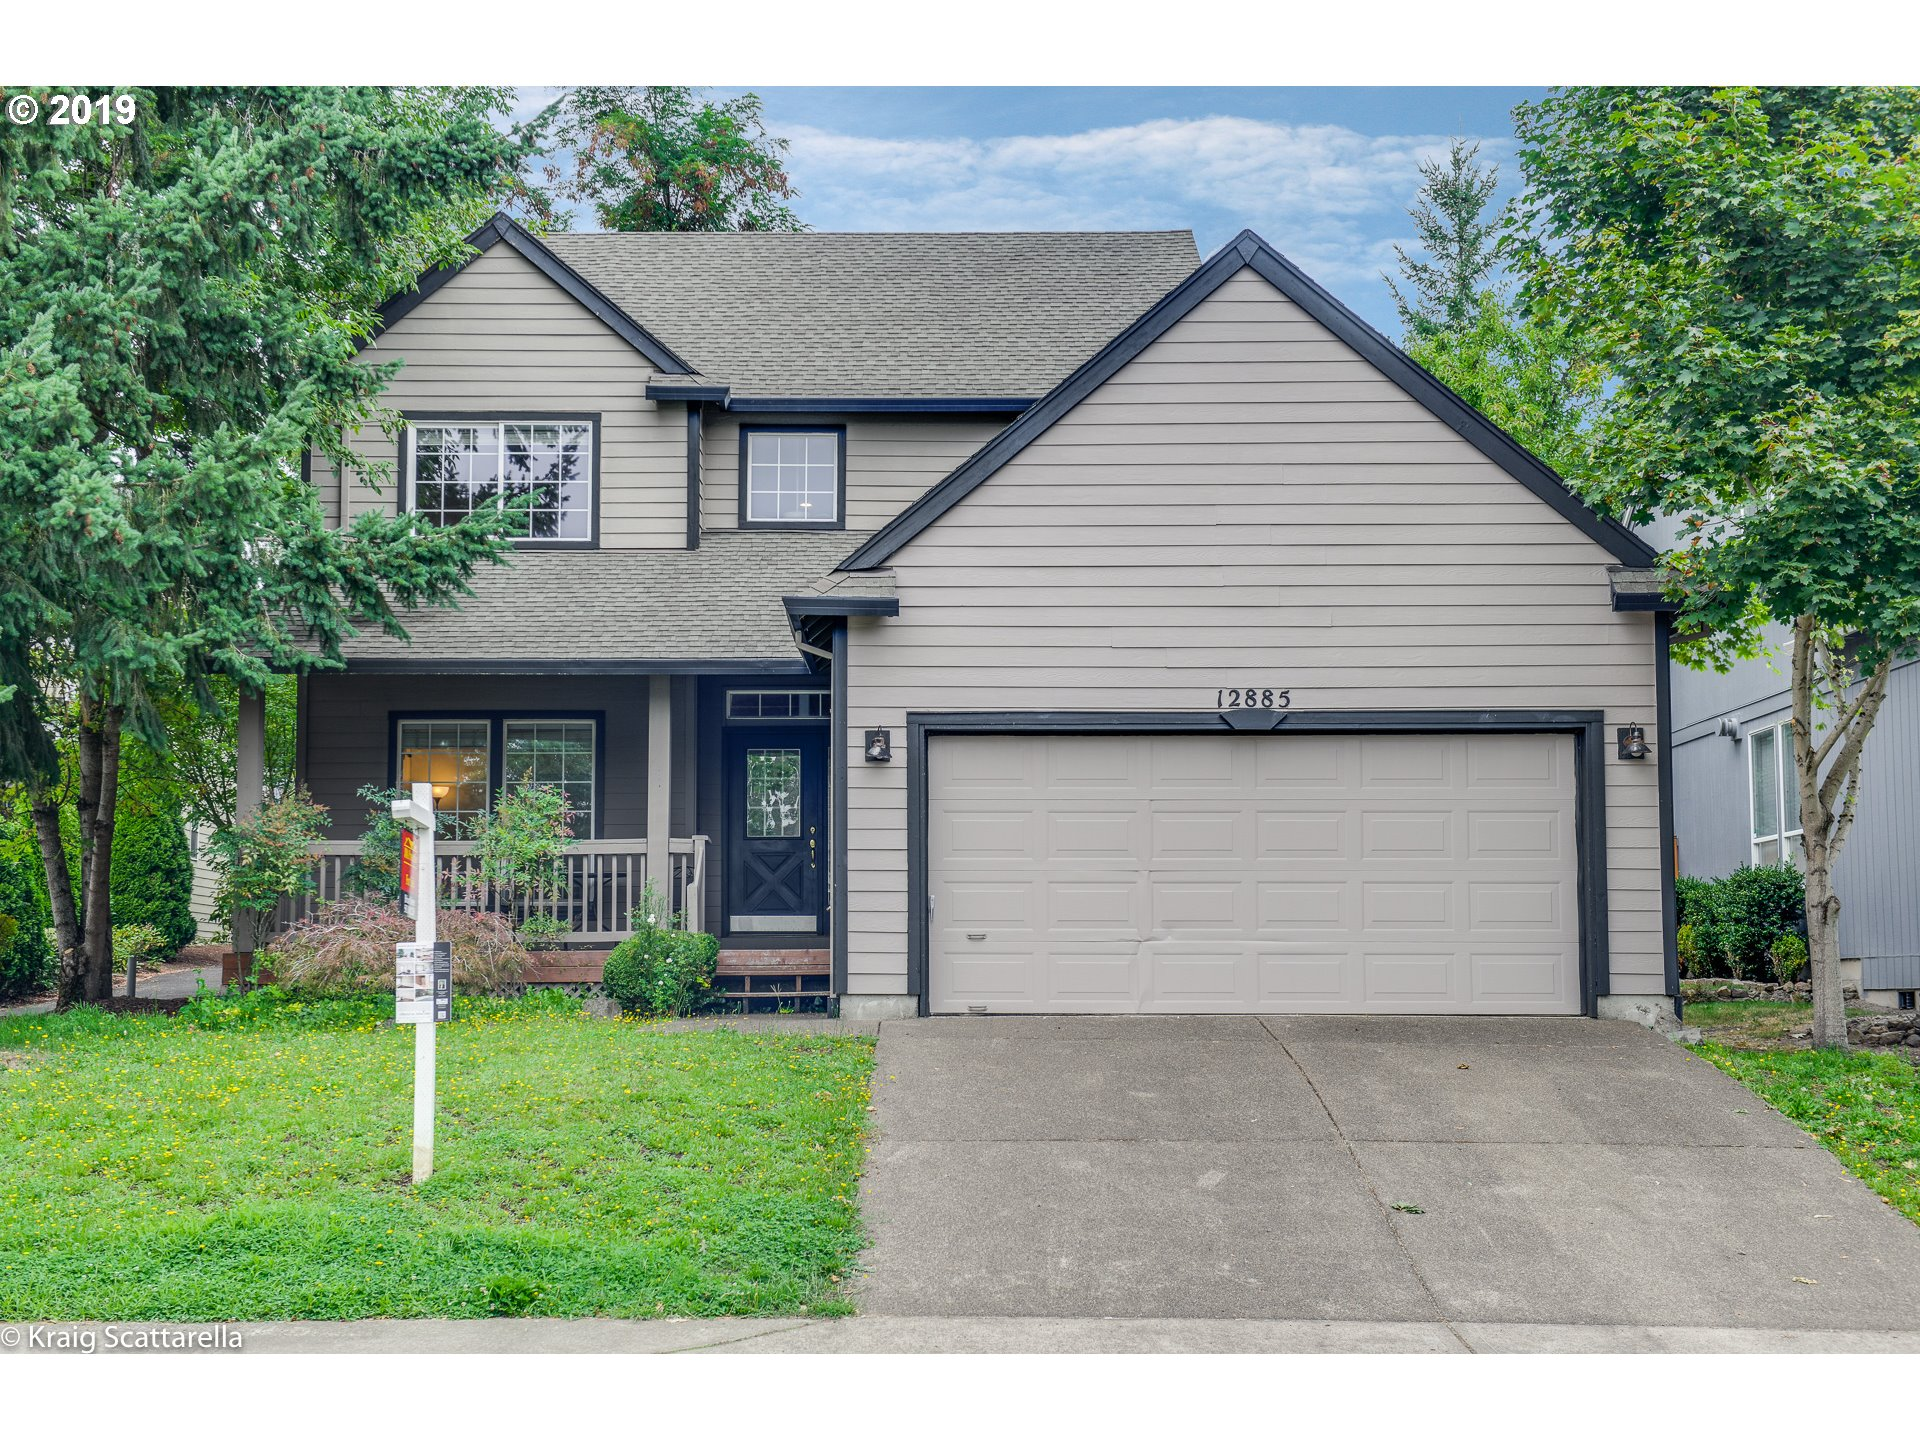 12885 SW HARLEQUIN DR Portland Home Listings - The Rob Levy Team Real Estate